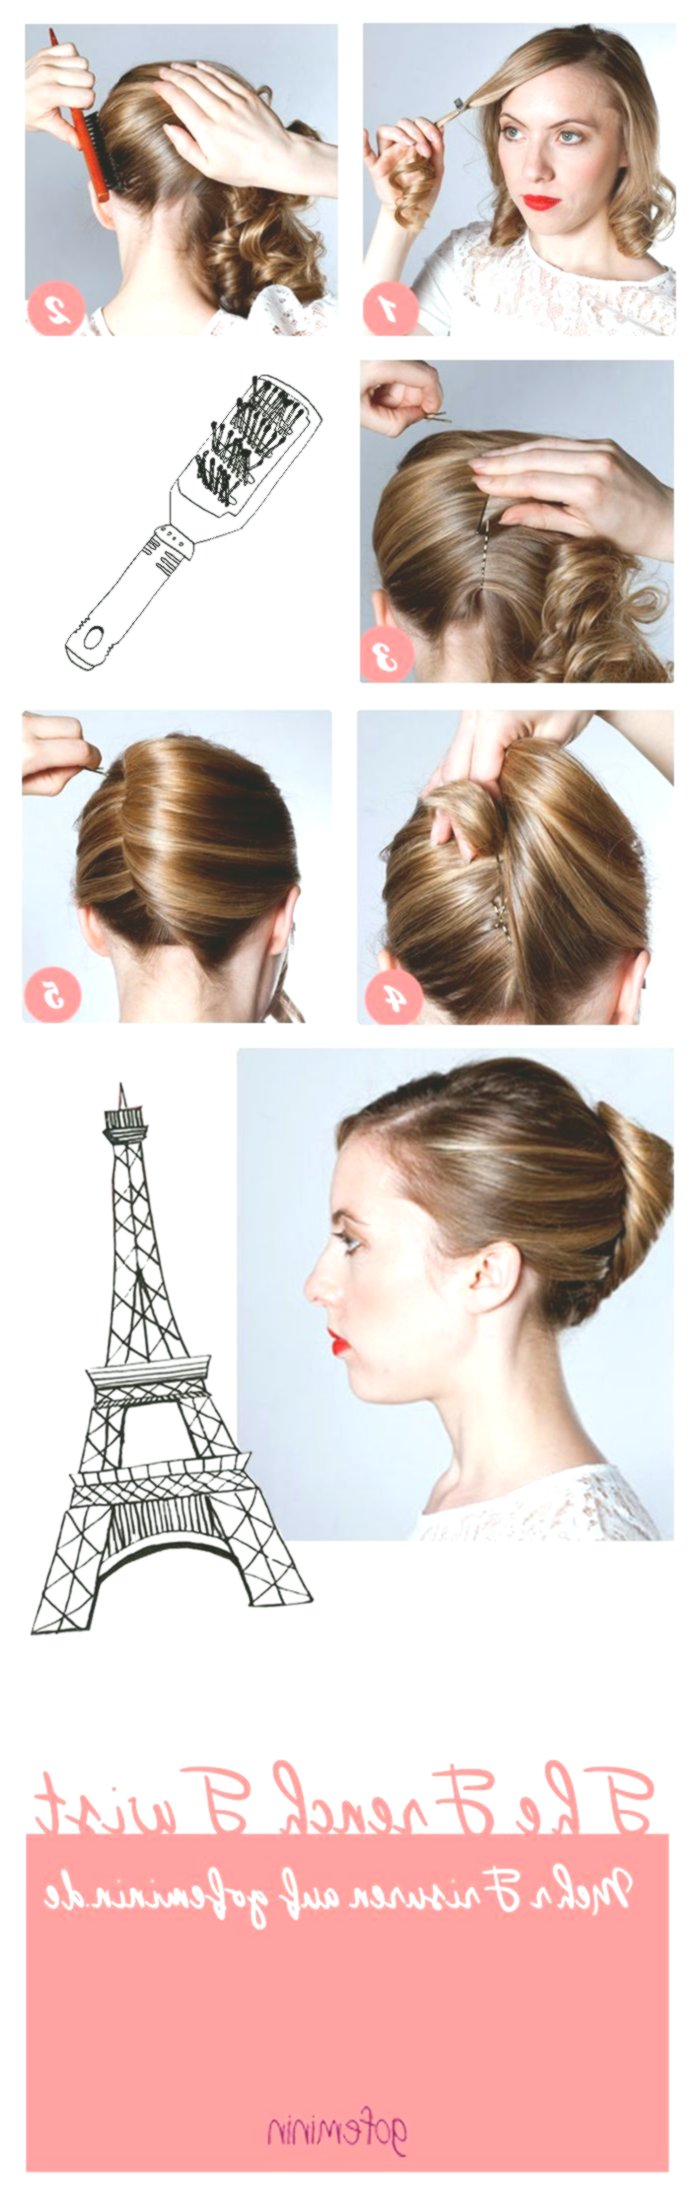 excellent braids curls image-Awesome braids curls layout